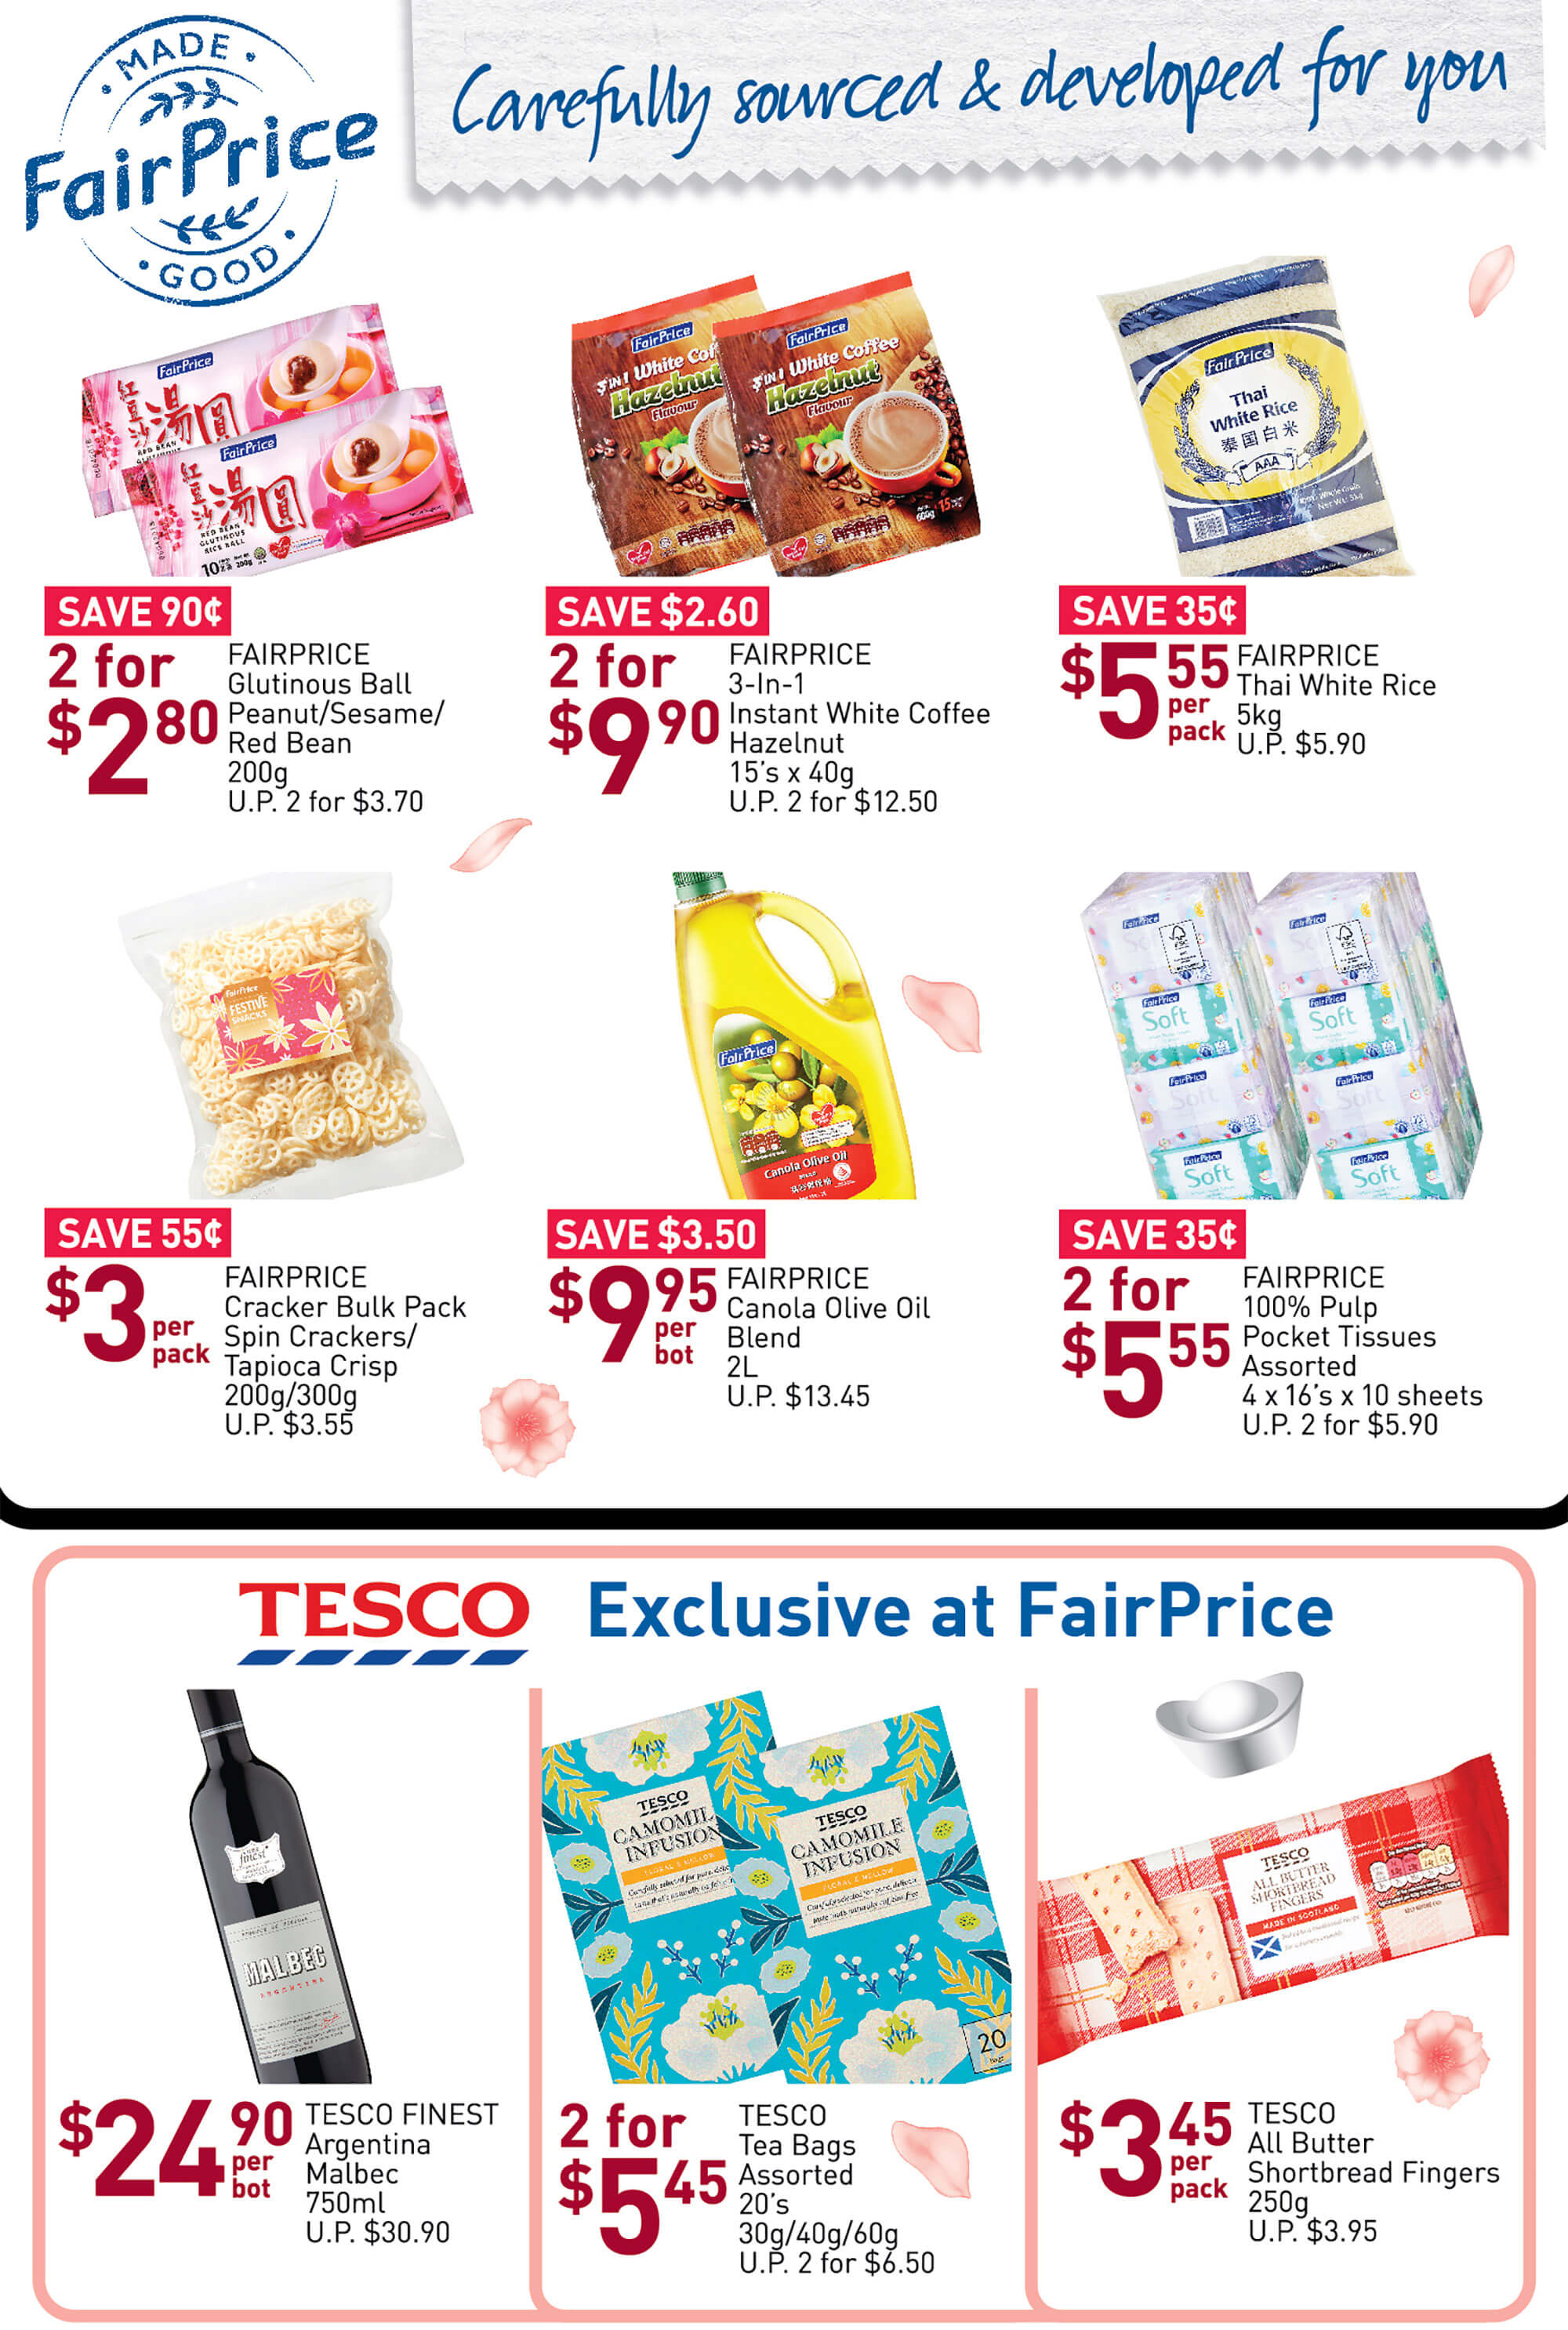 NTUC FairPrice SG Your Weekly Saver Promotions 9-15 Jan 2020 | Why Not Deals 7 & Promotions